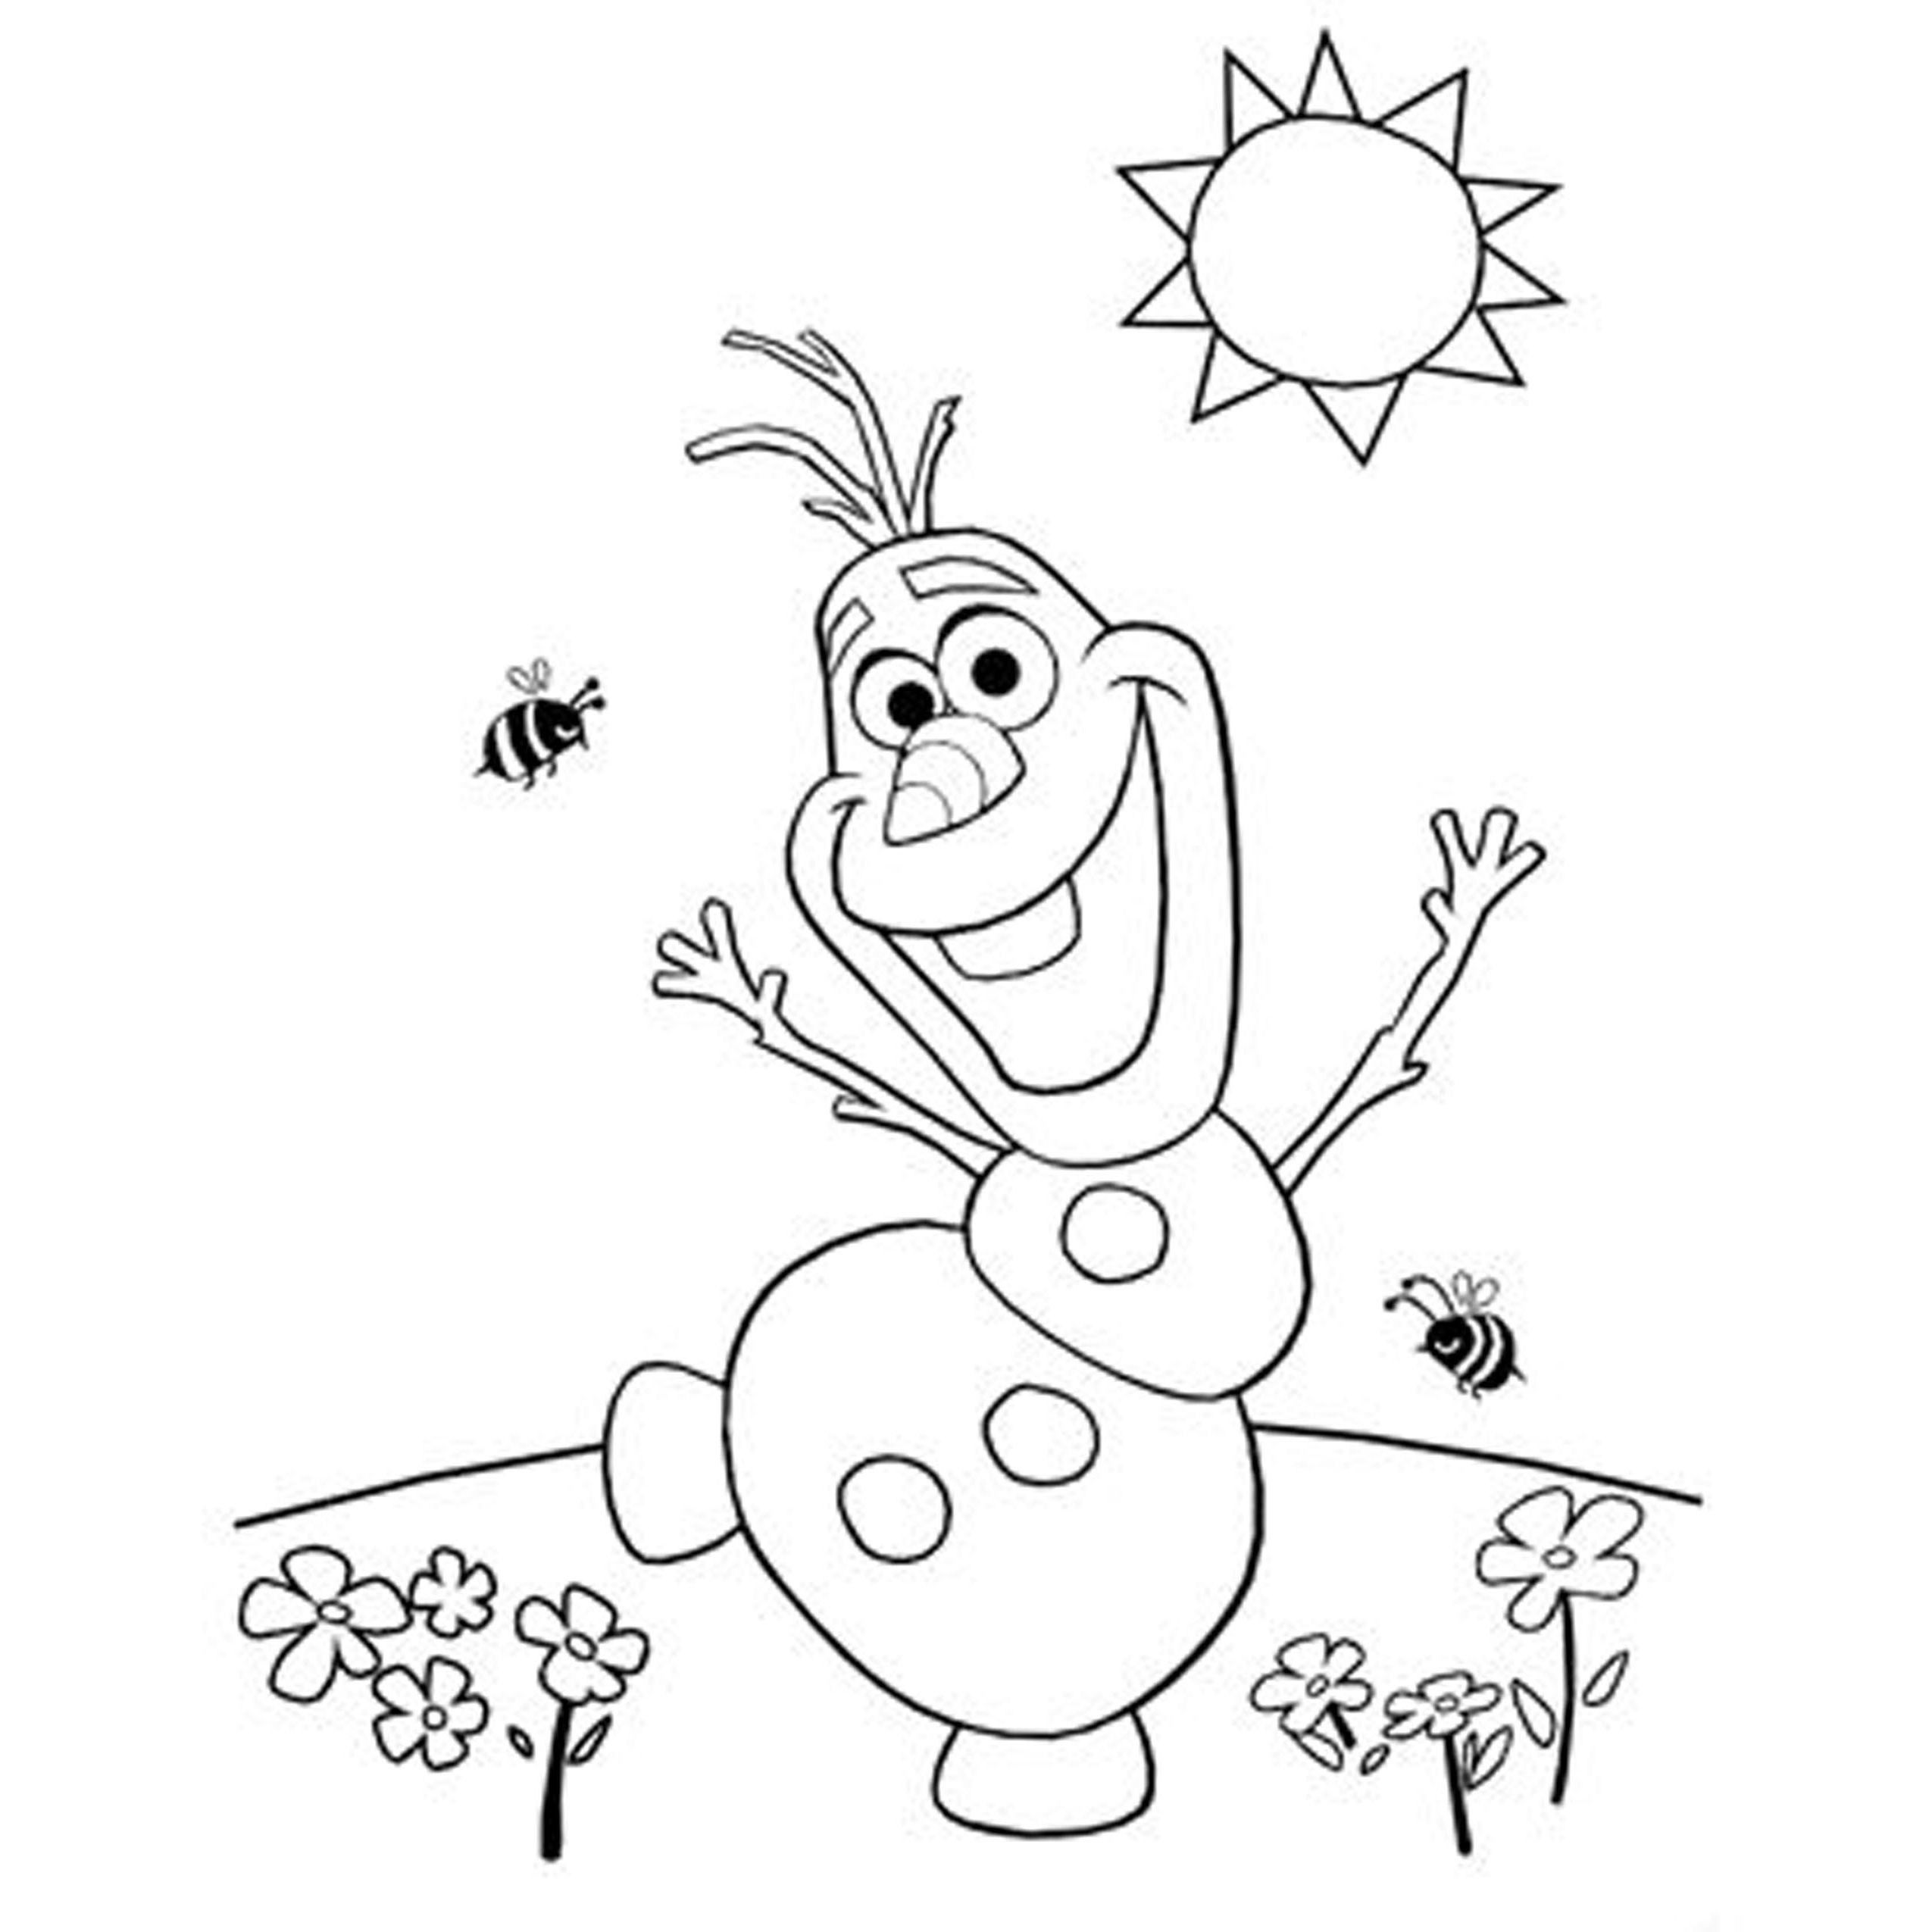 Printable Coloring Pages Frozen Olaf Elsa Coloring Pages Disney